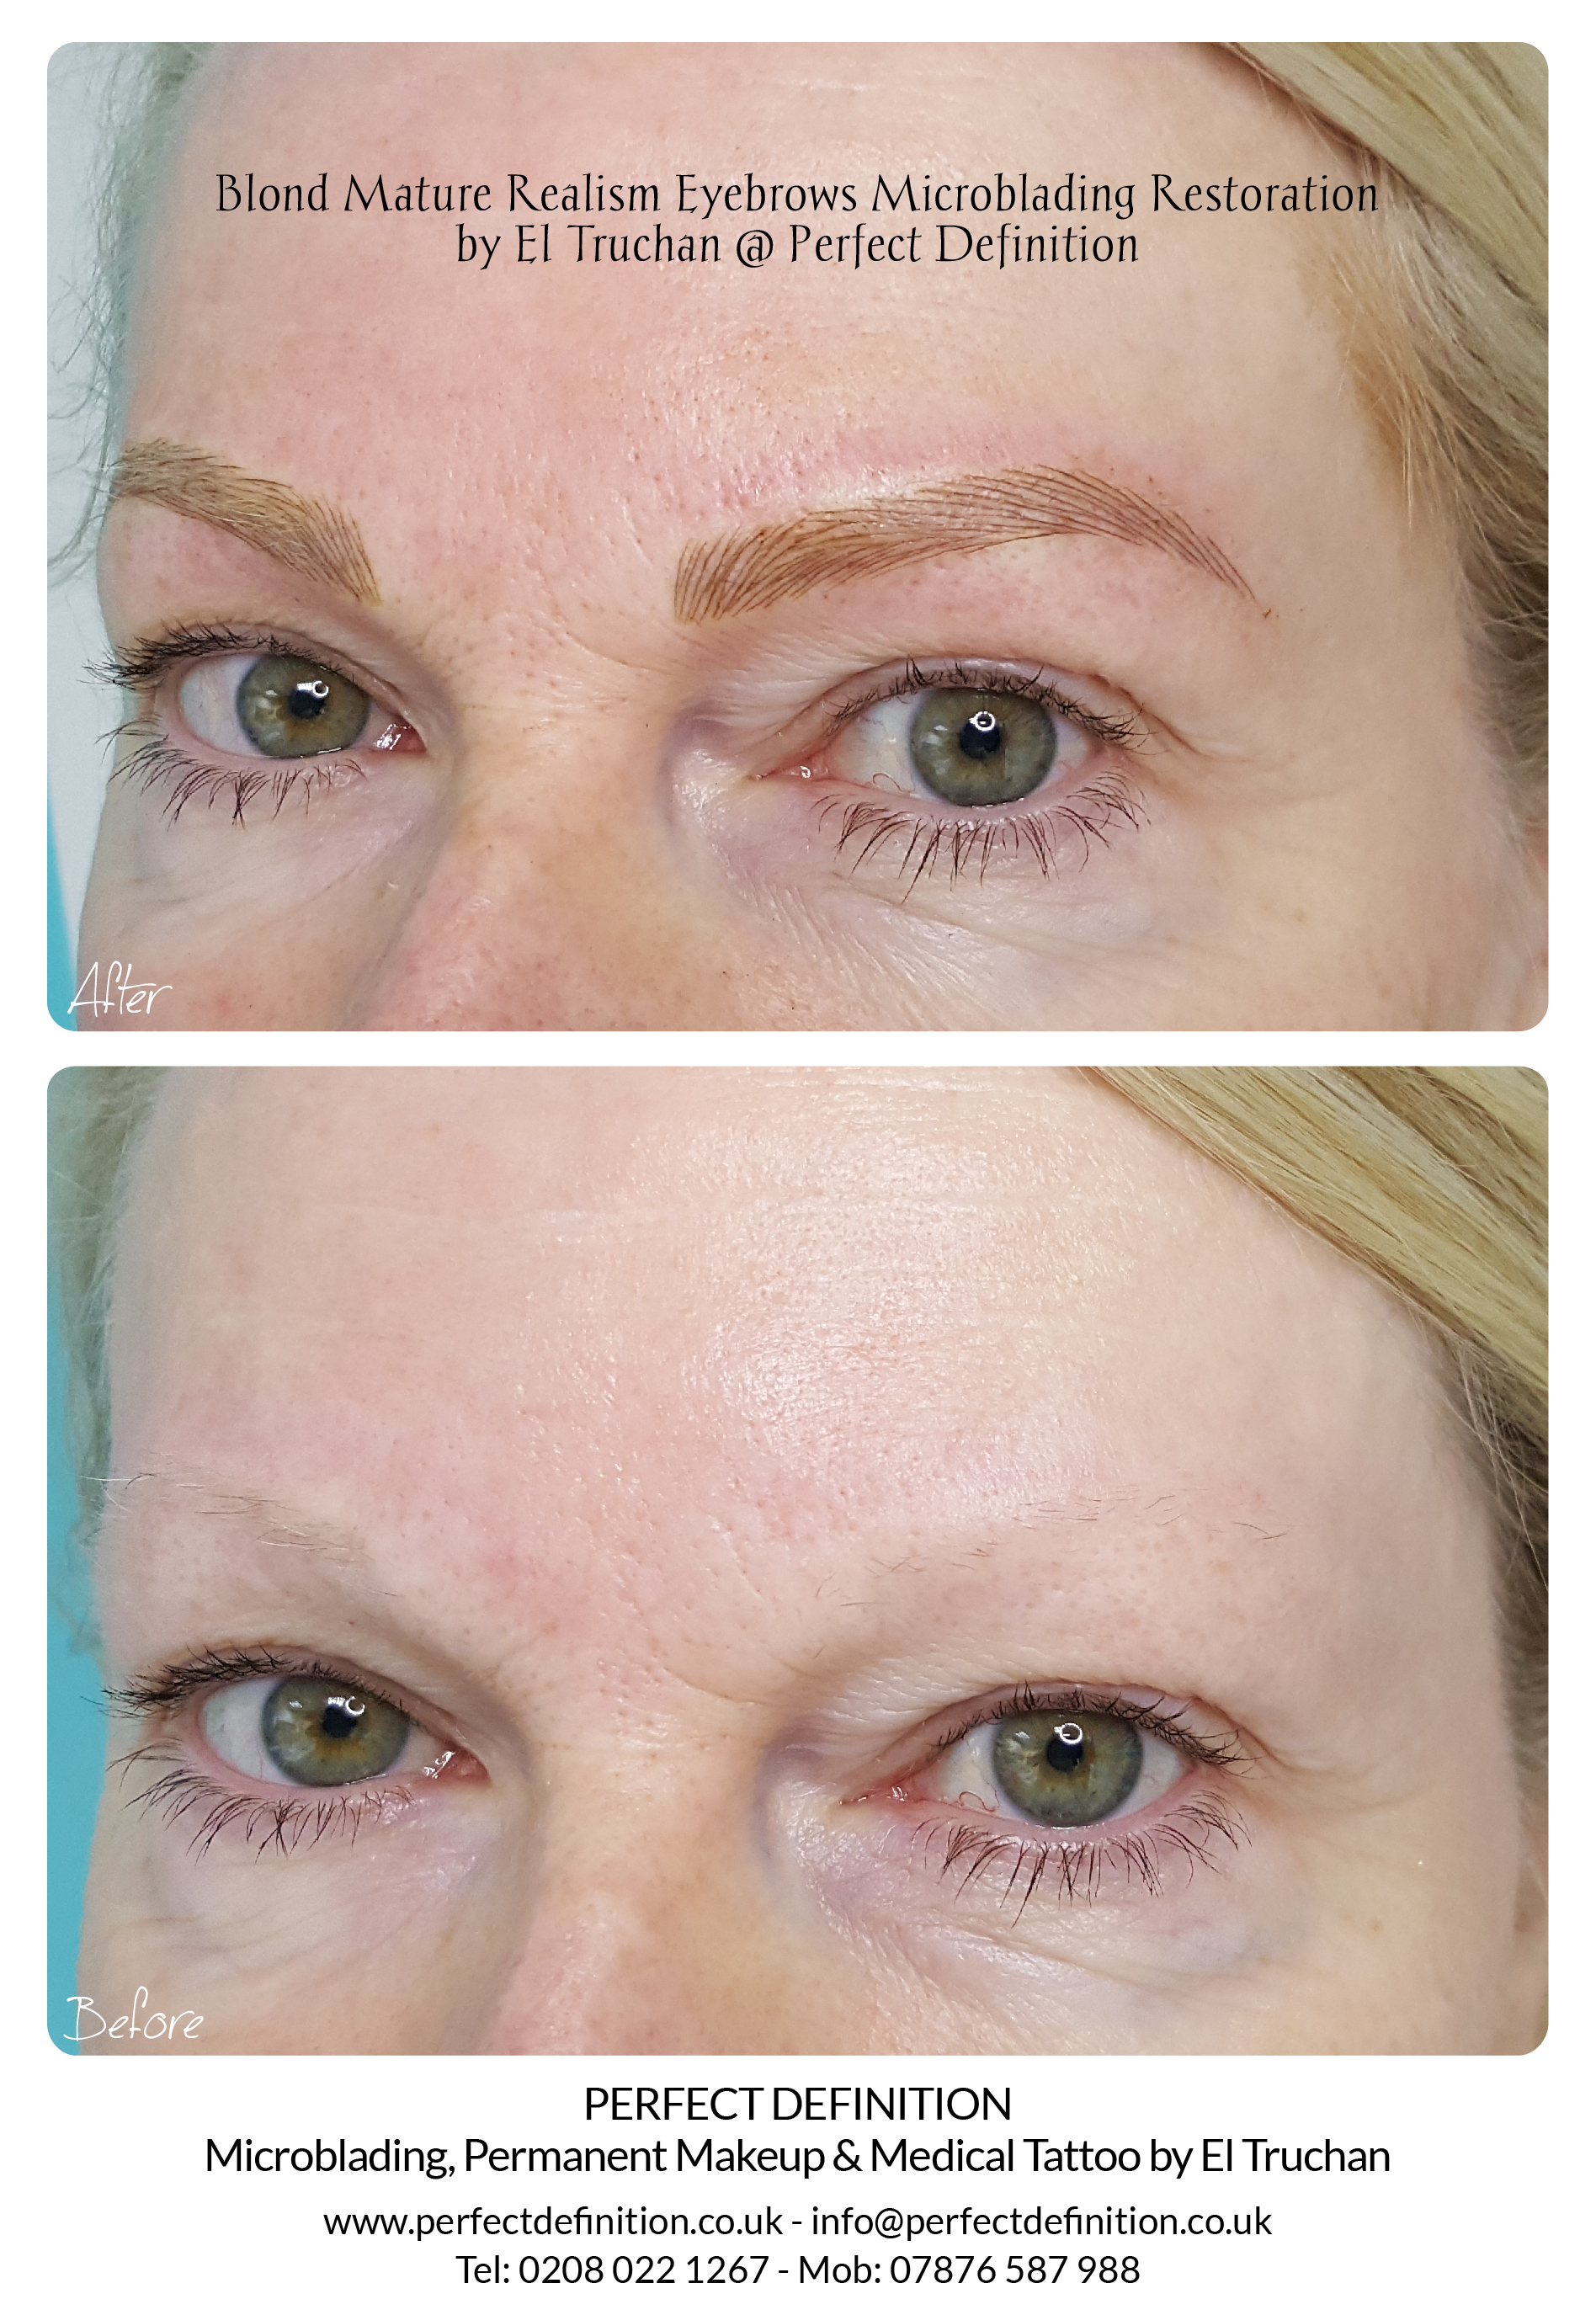 Blond Mature Realism Eyebrows Microbladi